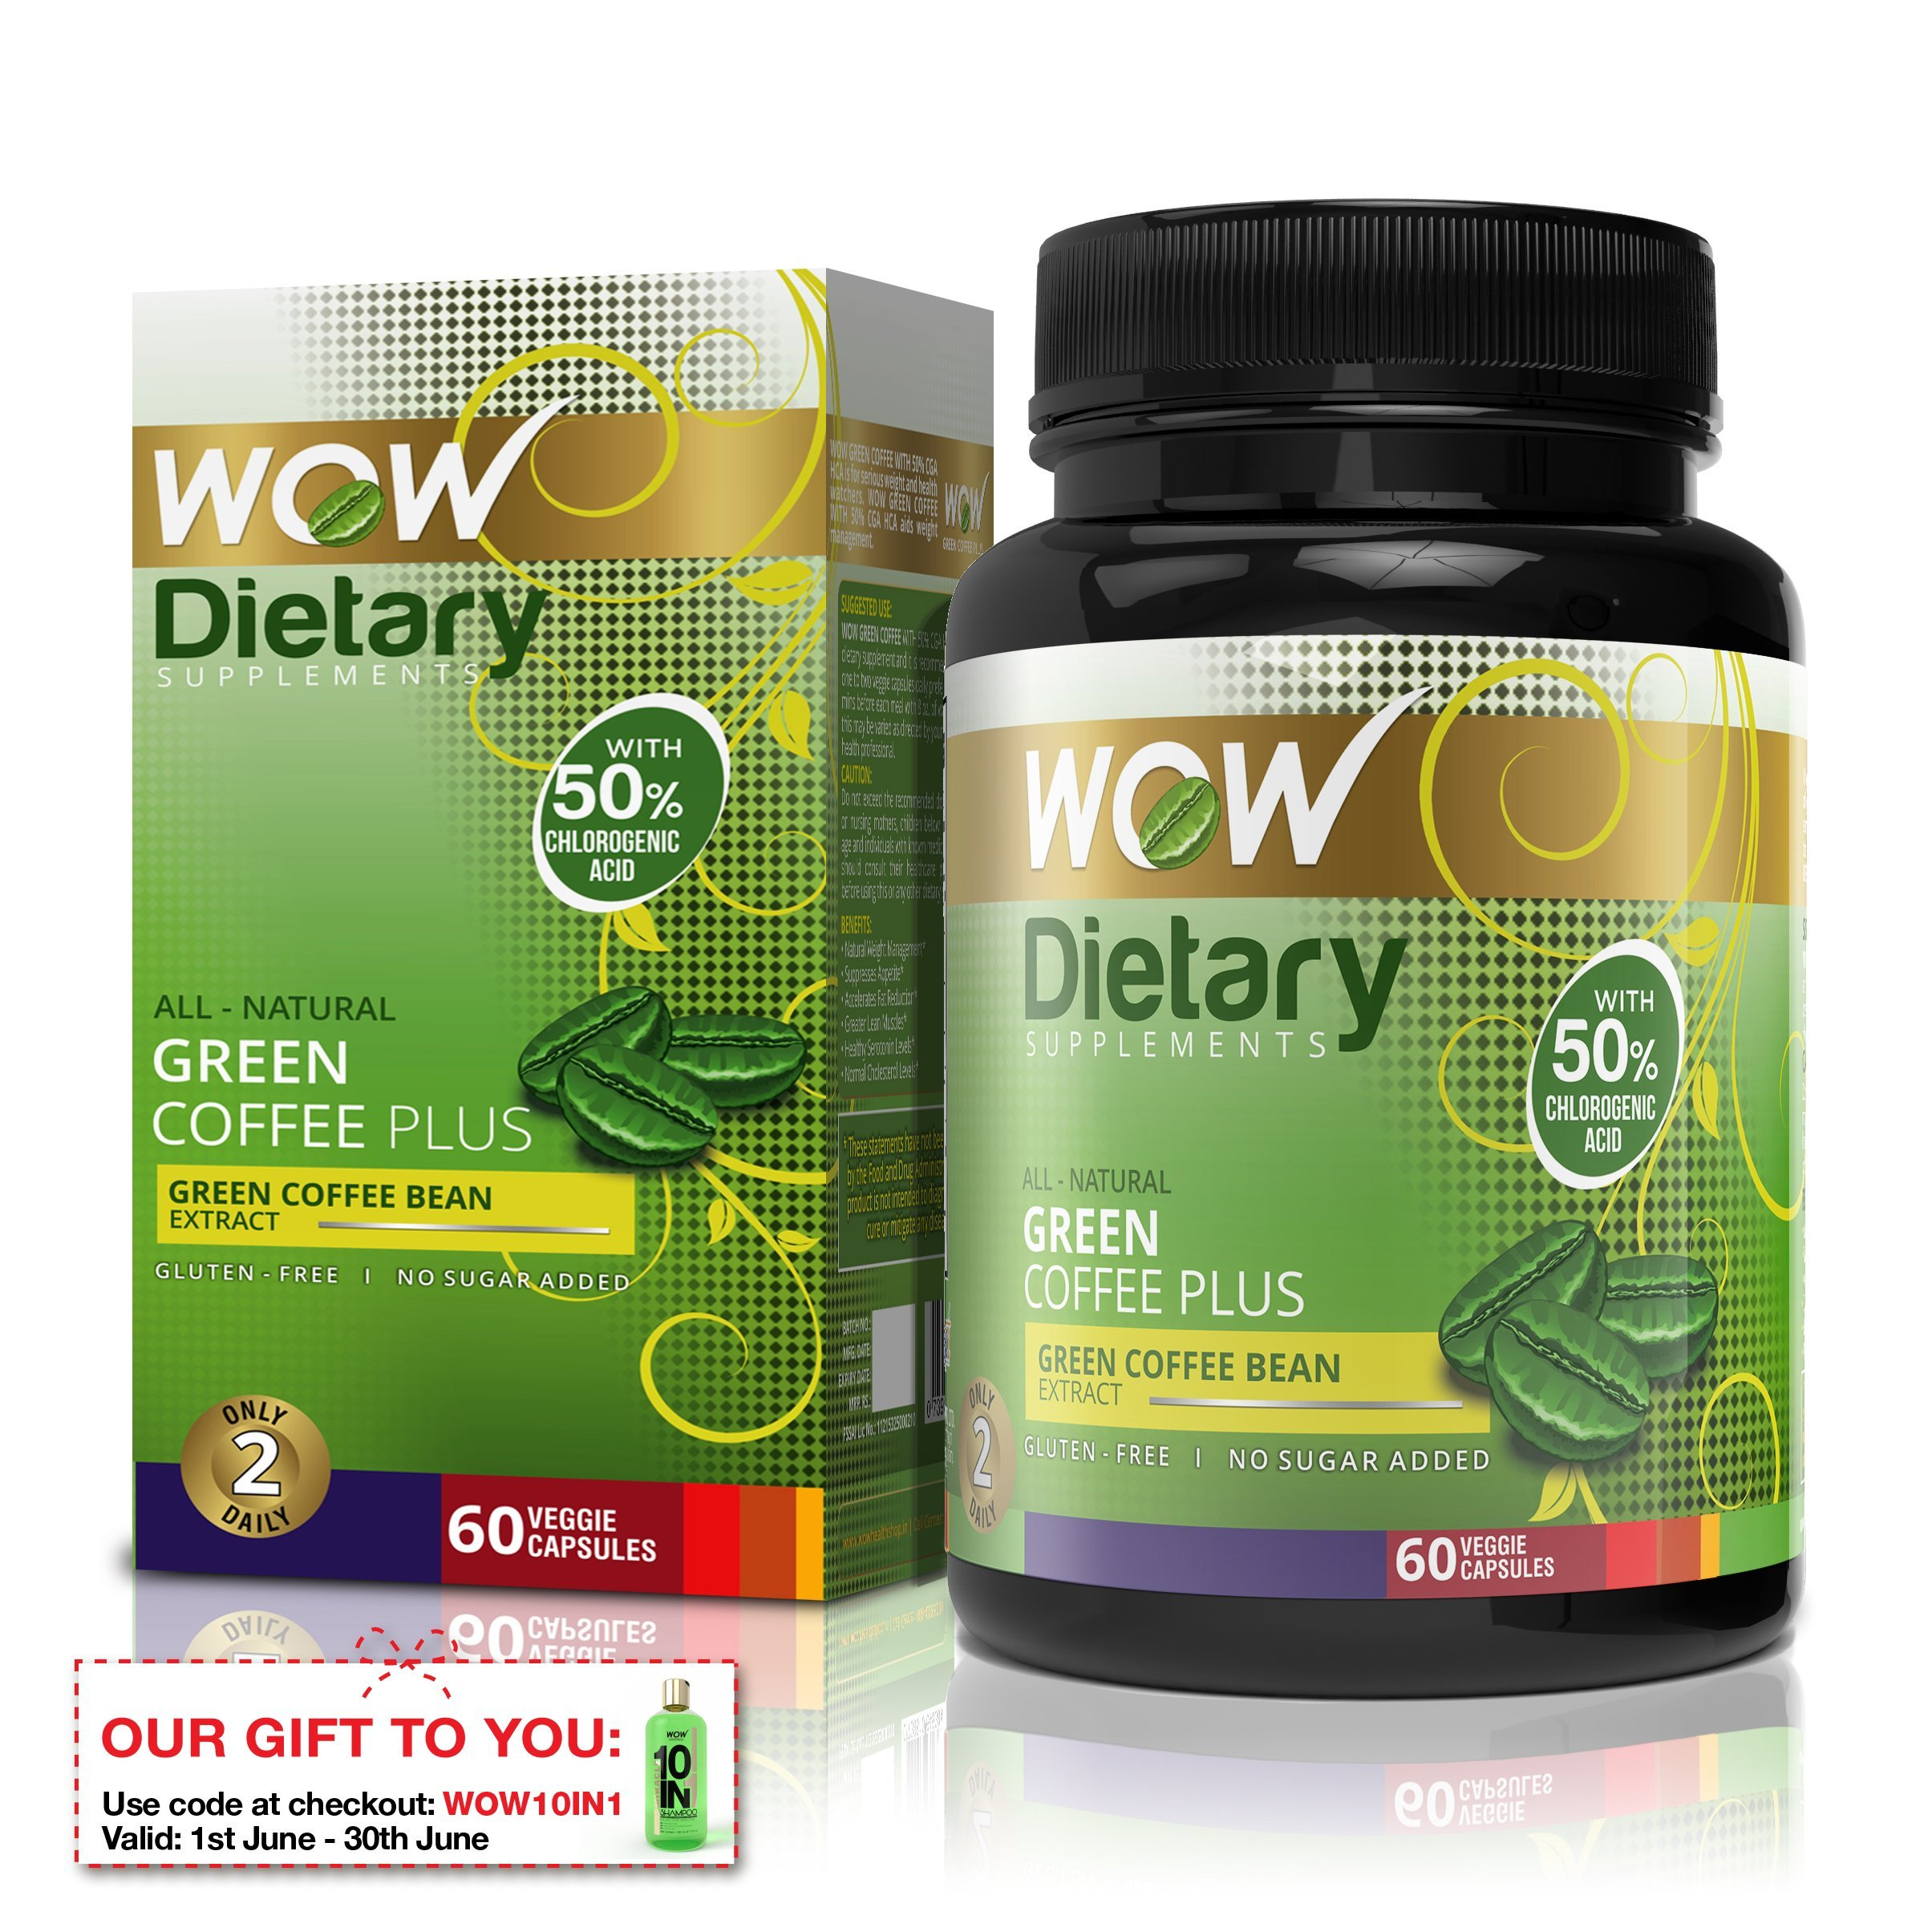 Wow Green Coffee Plus - 60 Vegetarian Capsules product image